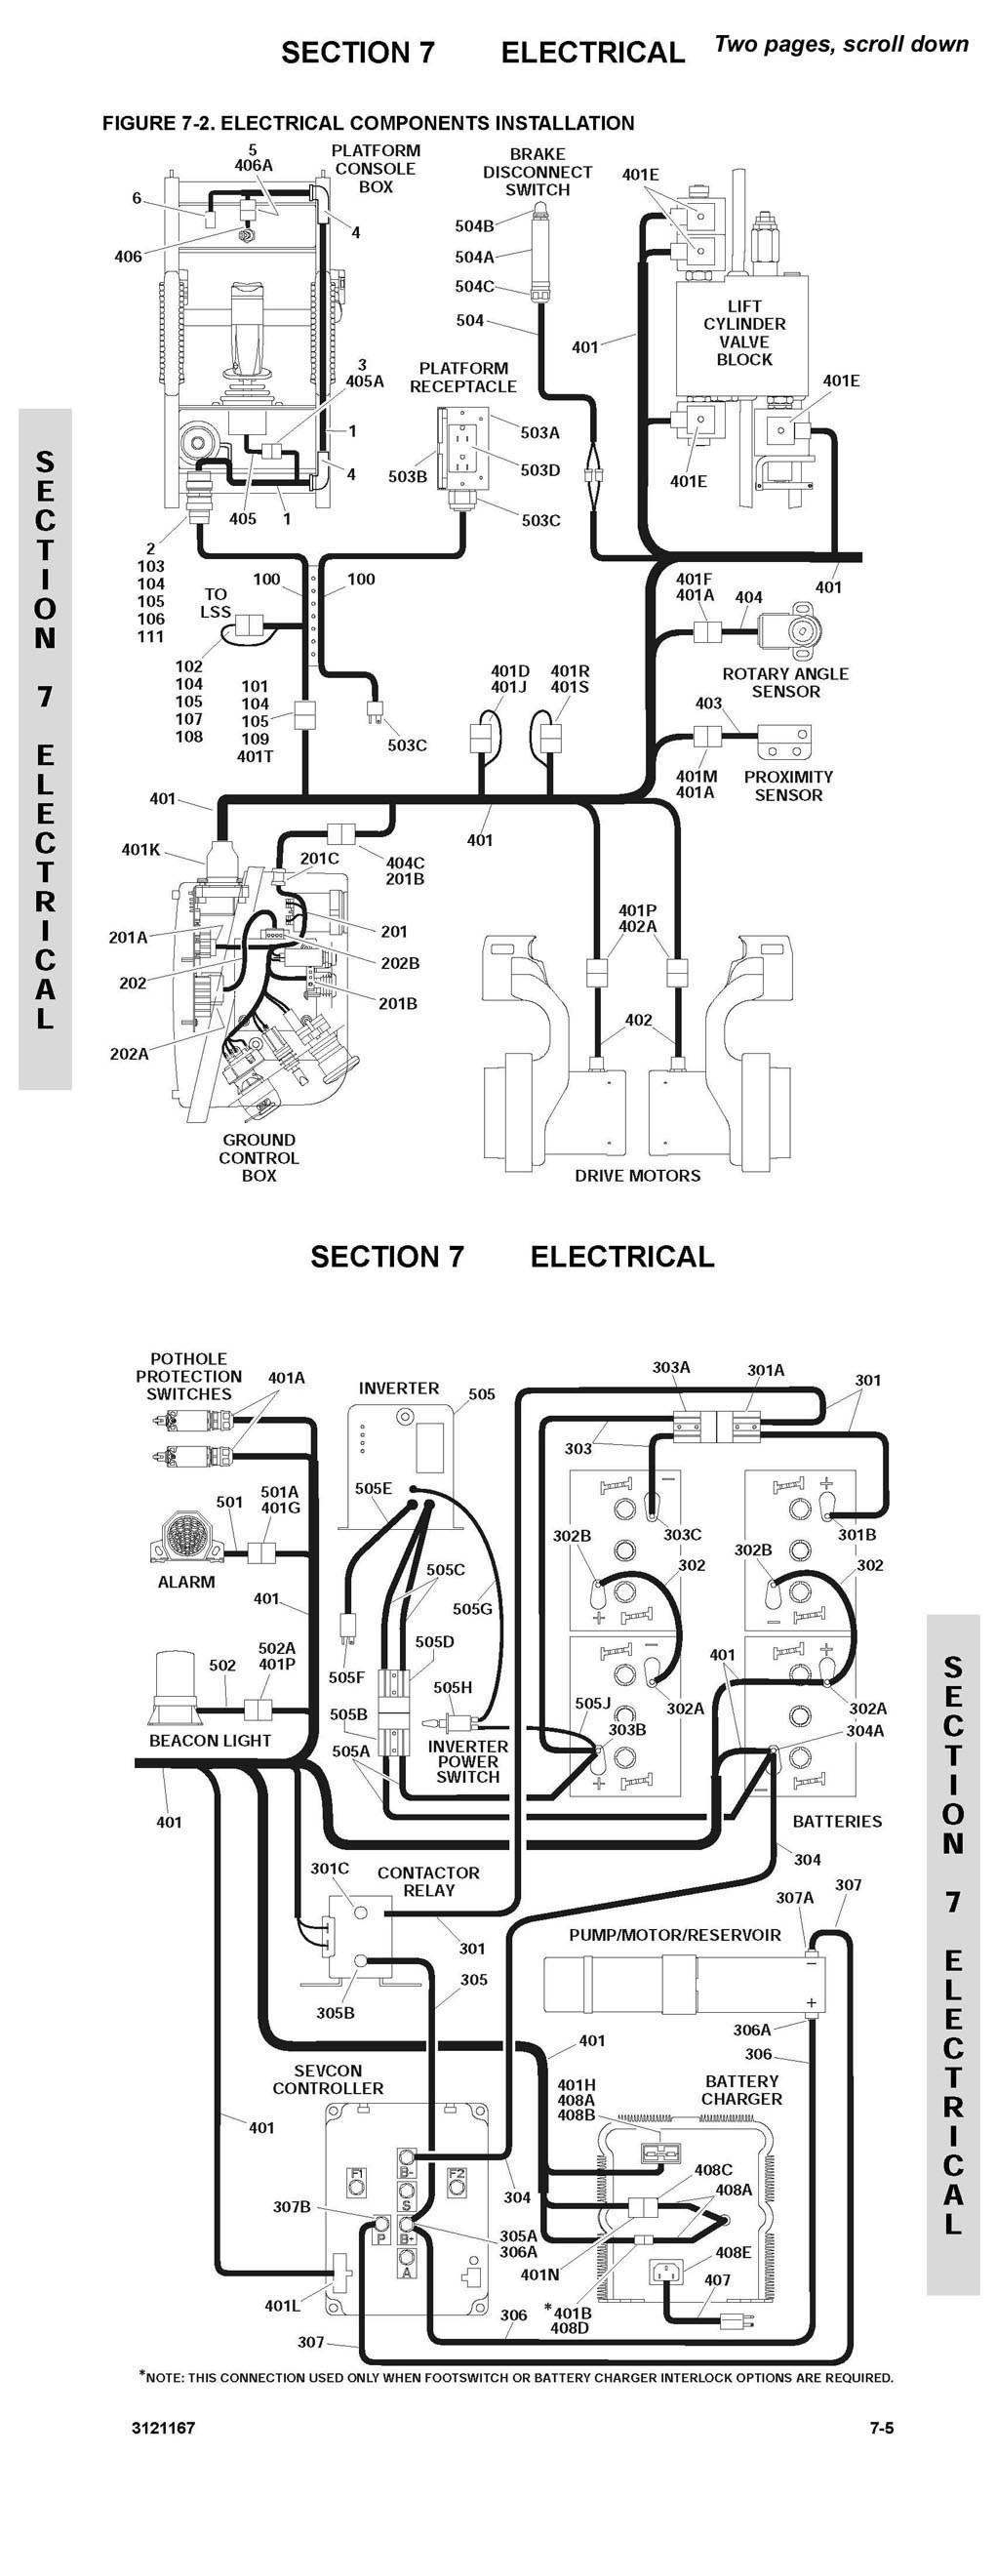 Diagram  Wiring Lighting Fixtures Wiring Diagram Full